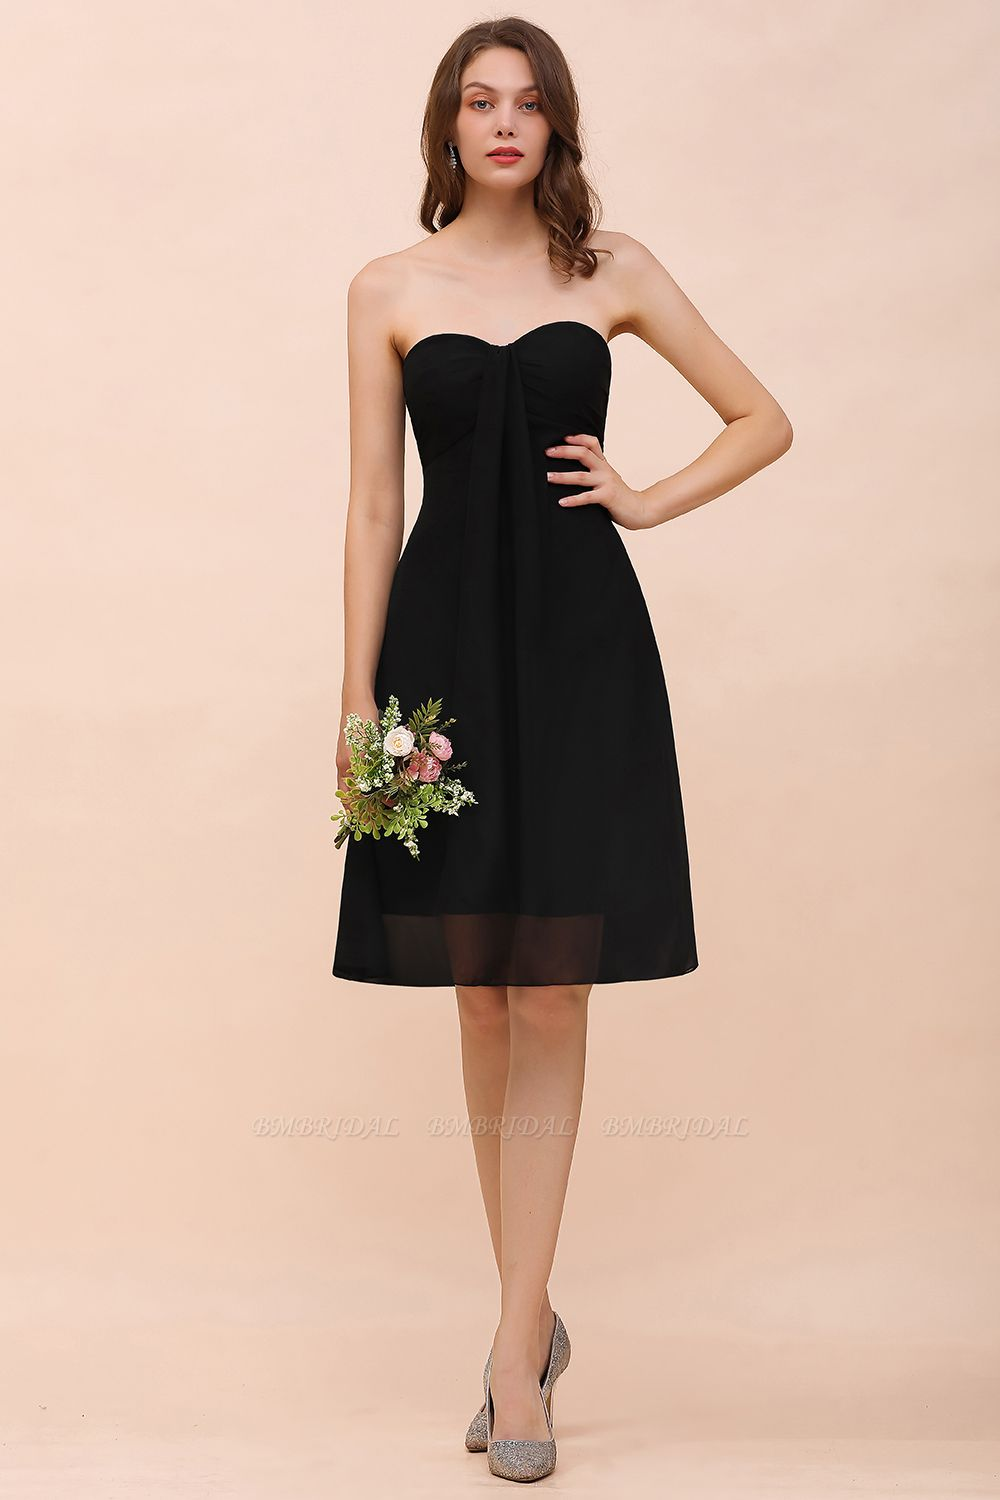 Lovely Strapless Sweetheart Ruffle Short Black Bridesmaid Dress Affordable